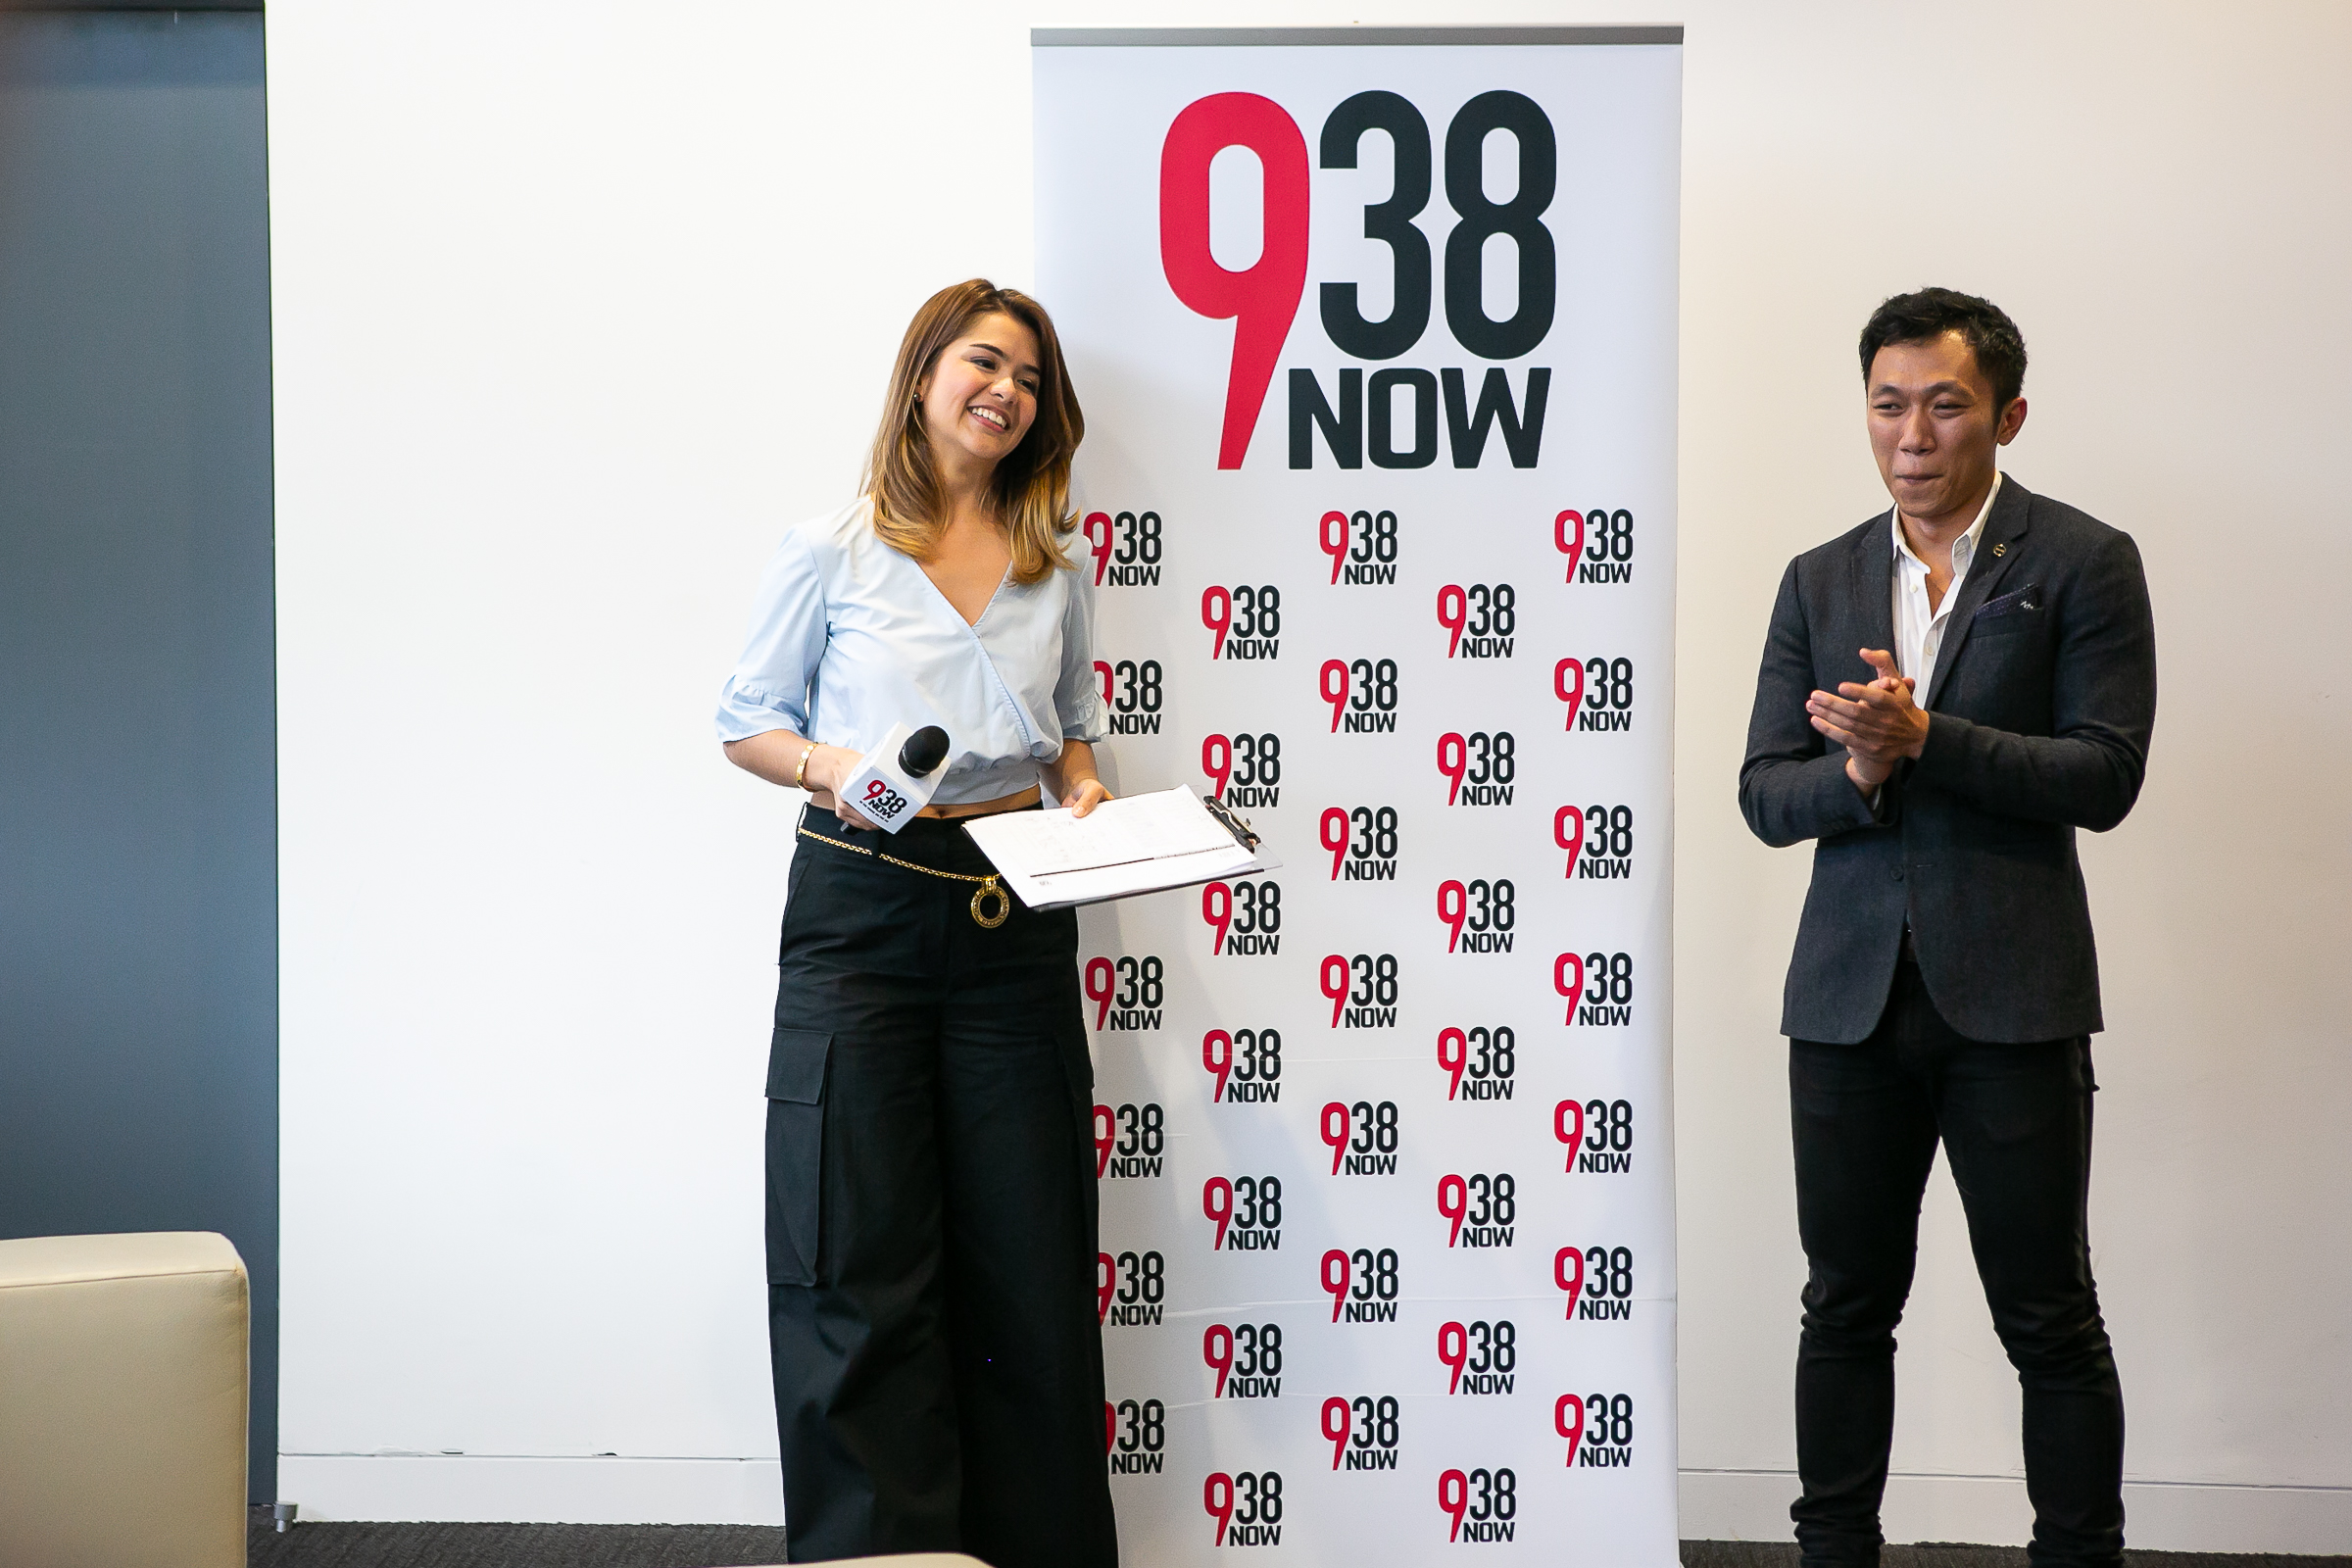 Host and radio personality Charlotte Mei with managing editor Farhan Shah during the 938NOW challenge